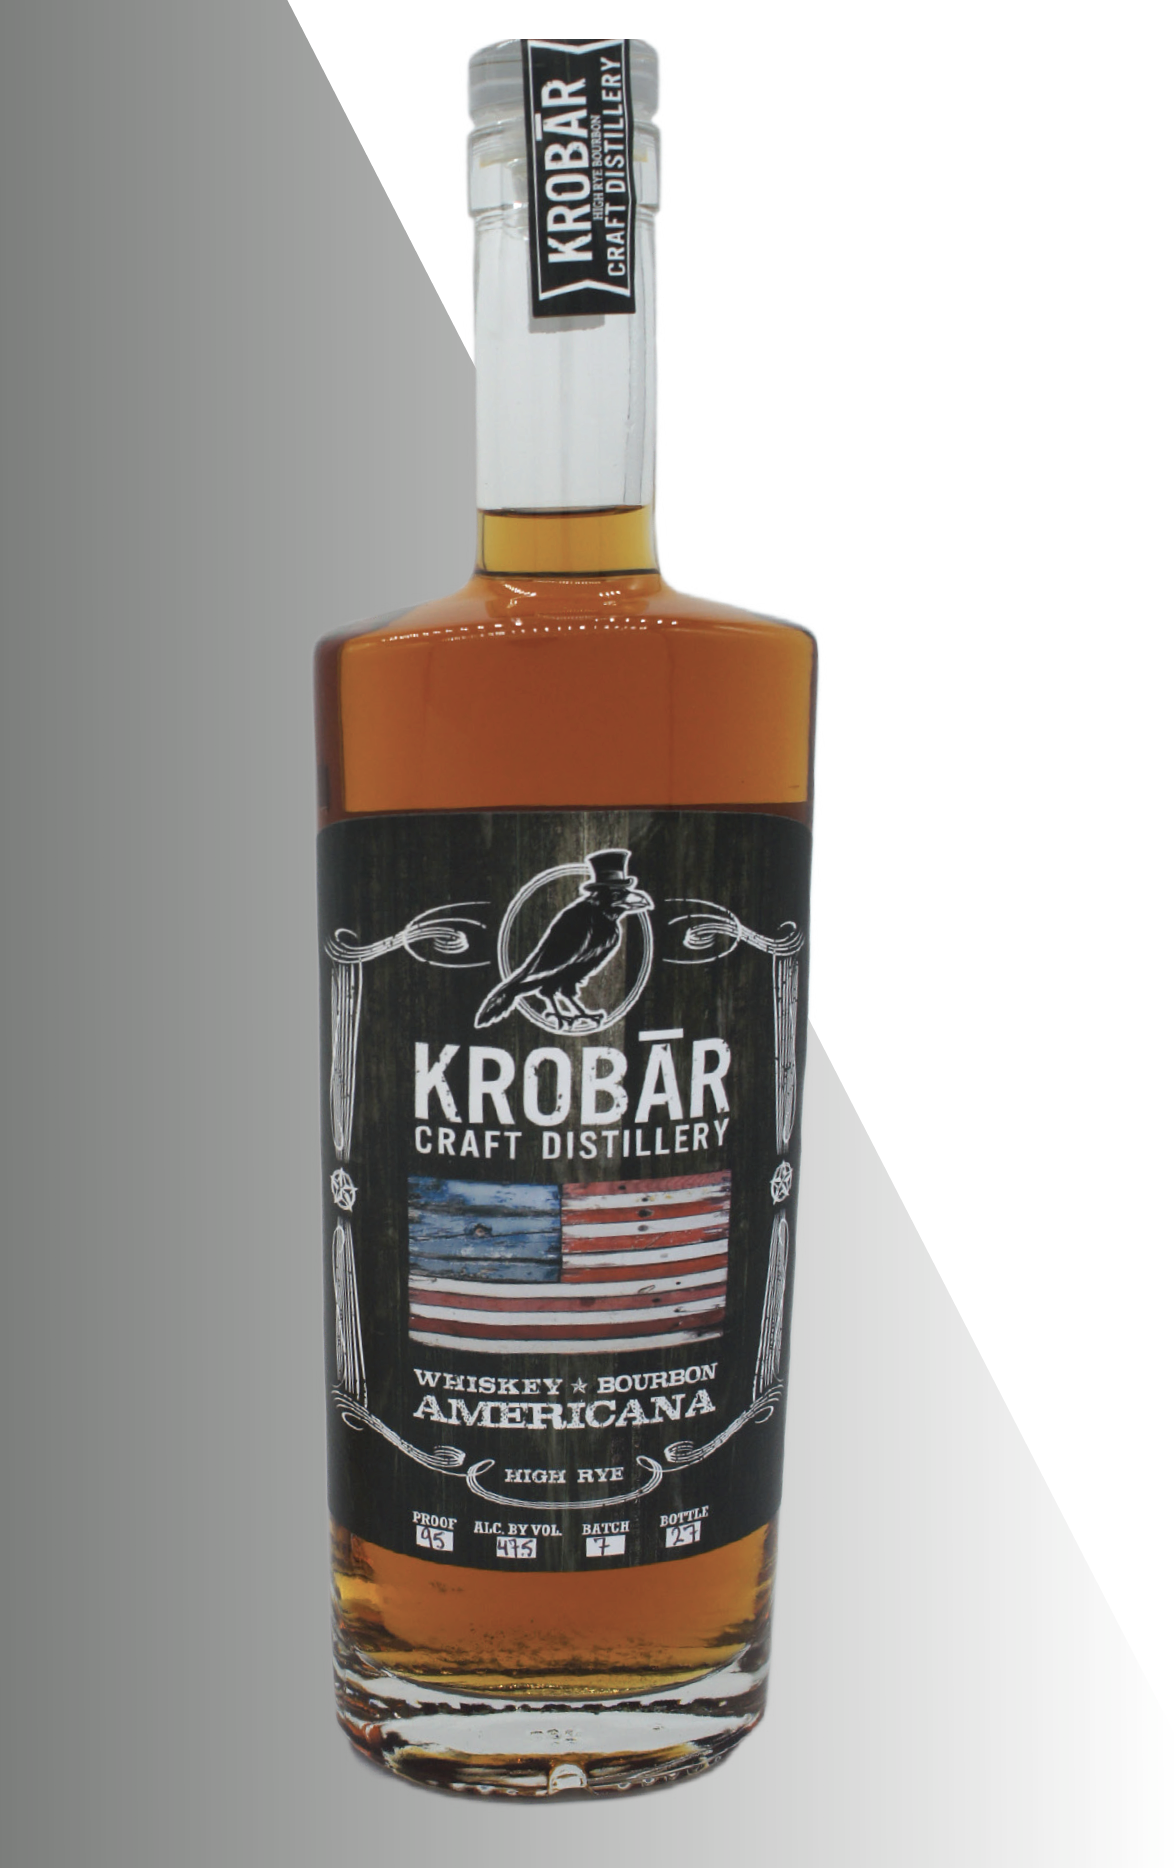 - KROBĀR Americana BourbonAfter distillation, this high Rye Bourbon is placed 53 gallon #2, 3, and 4 char American Oak Barrels and aged for over two years. 95 Proof / 47.5% ABVAwards: California Craft Spirits Competition, Gold Medal